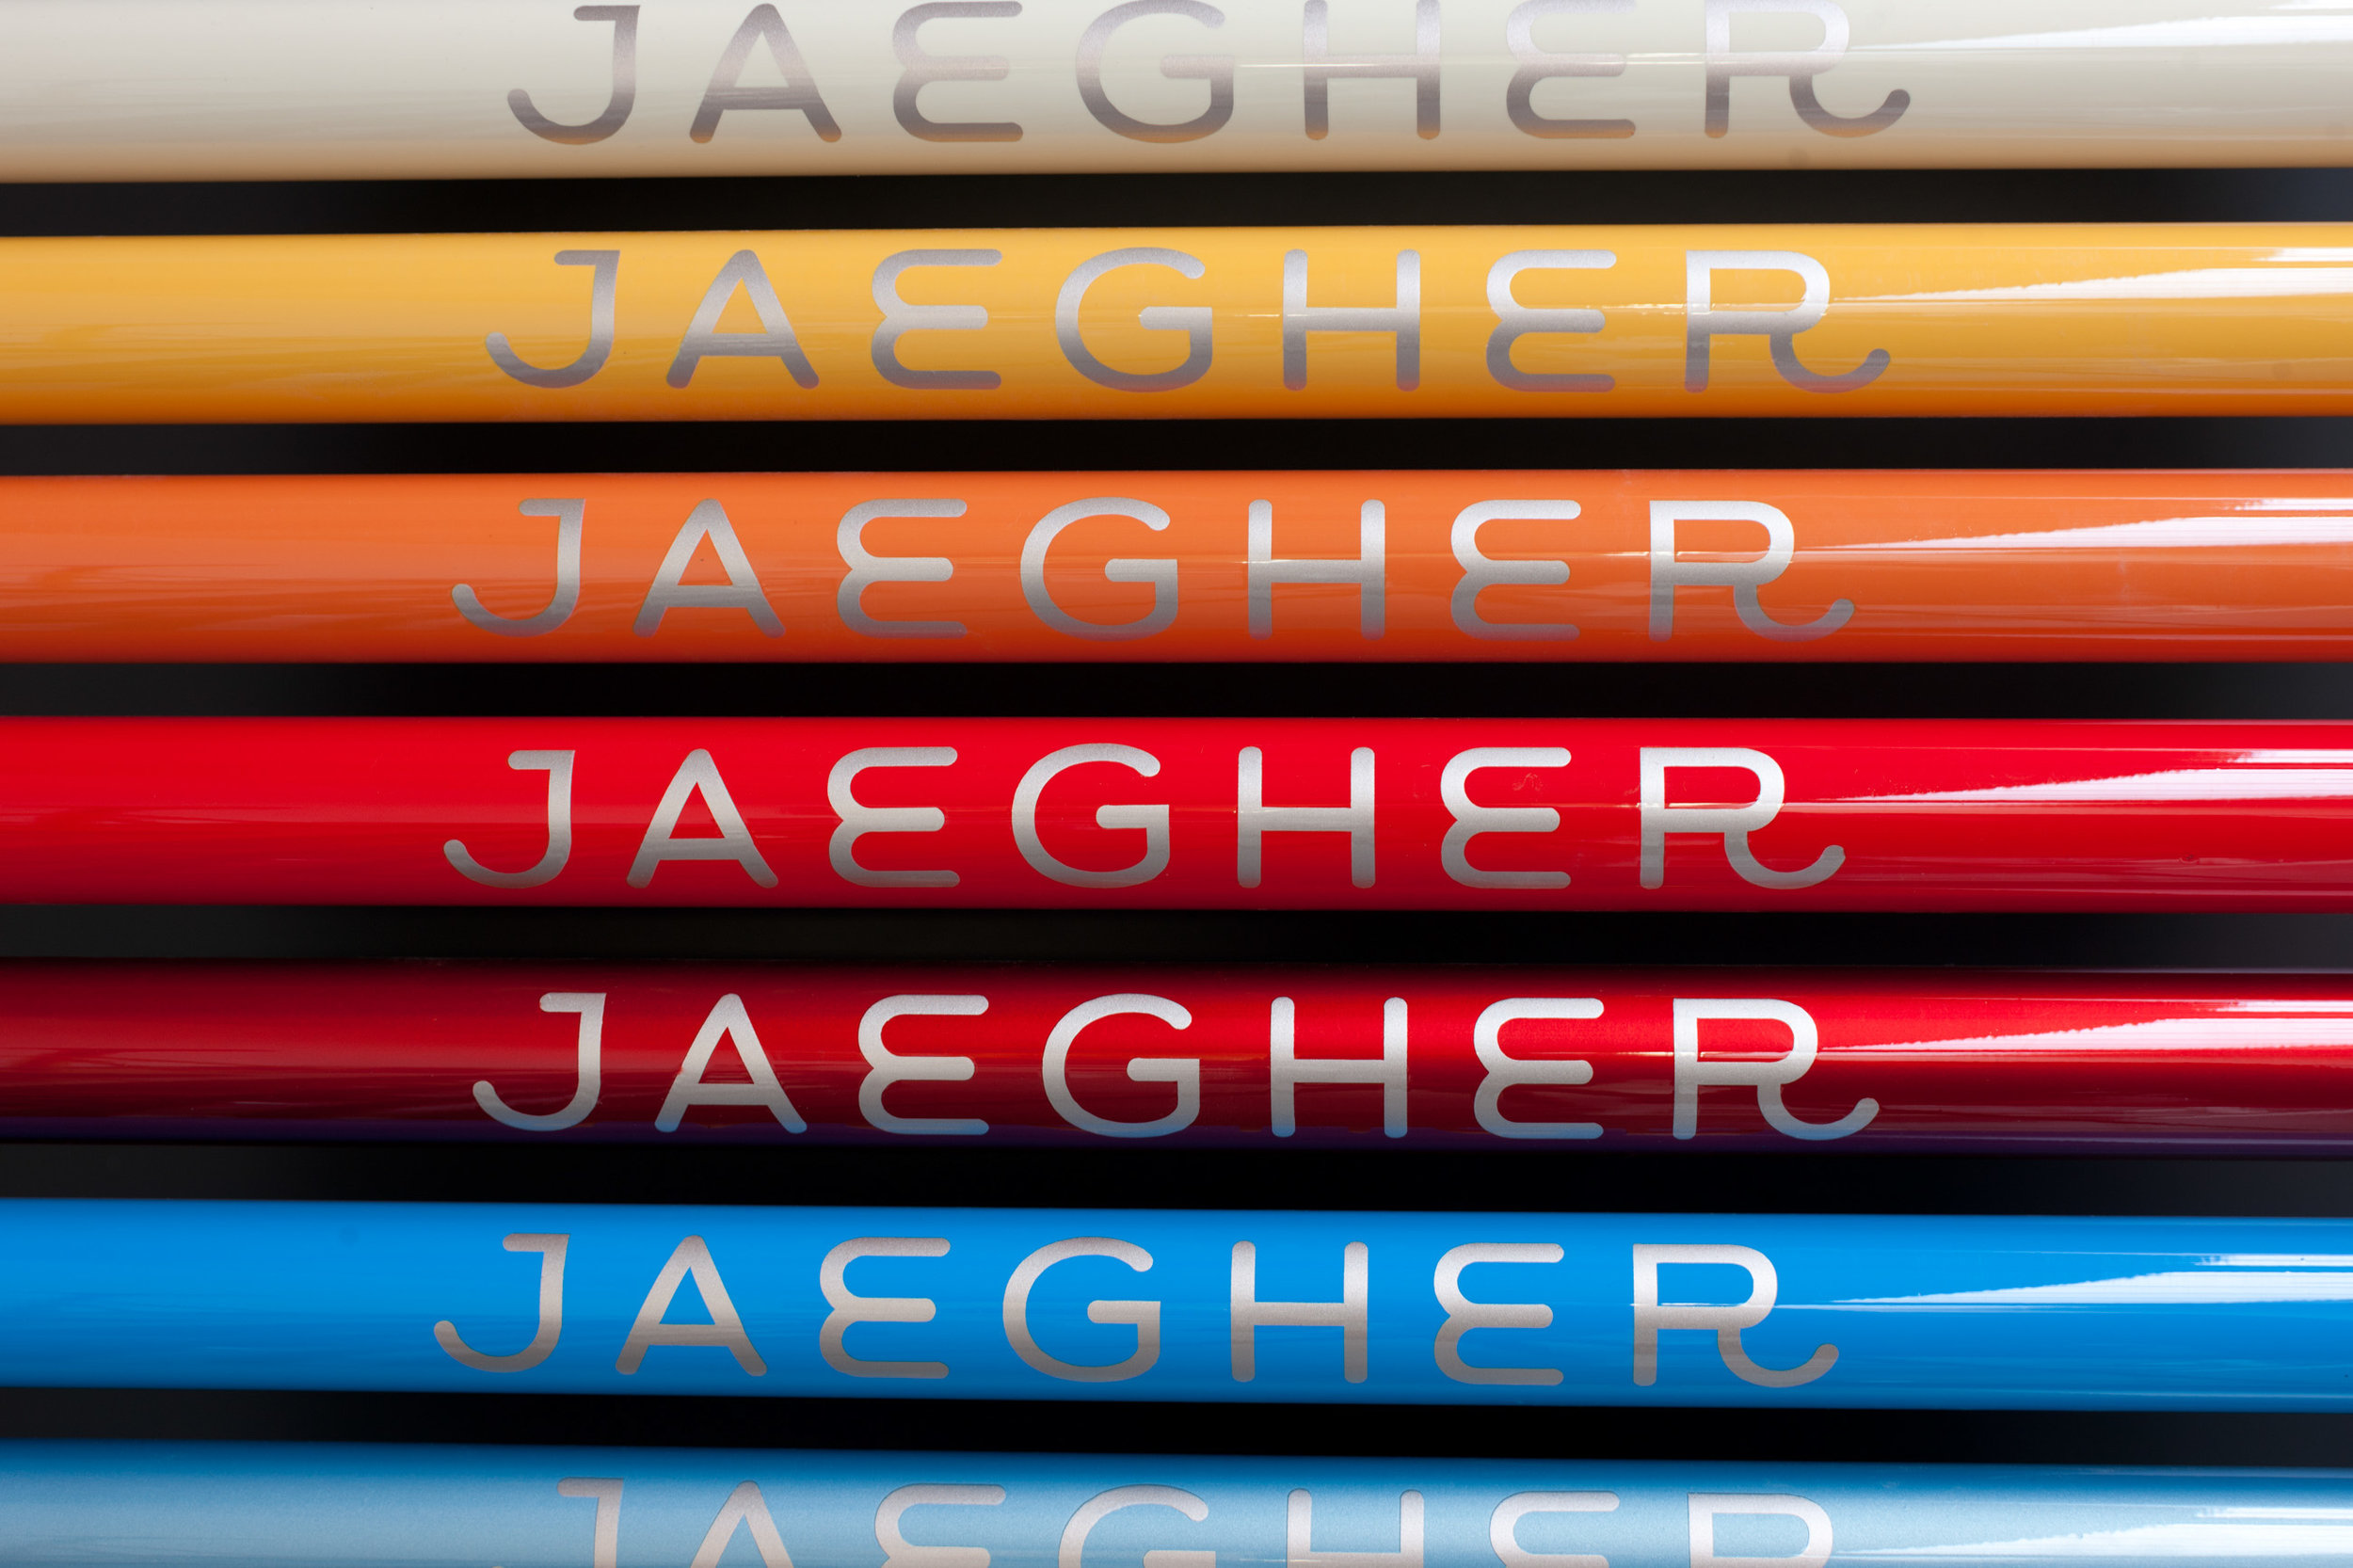 Jaegher-–-Airlight-Steel-Race-Cycles-rennrad-bicycle-minimal-branding-by-jelle-marechal-mindsparkle-mag-11.jpeg